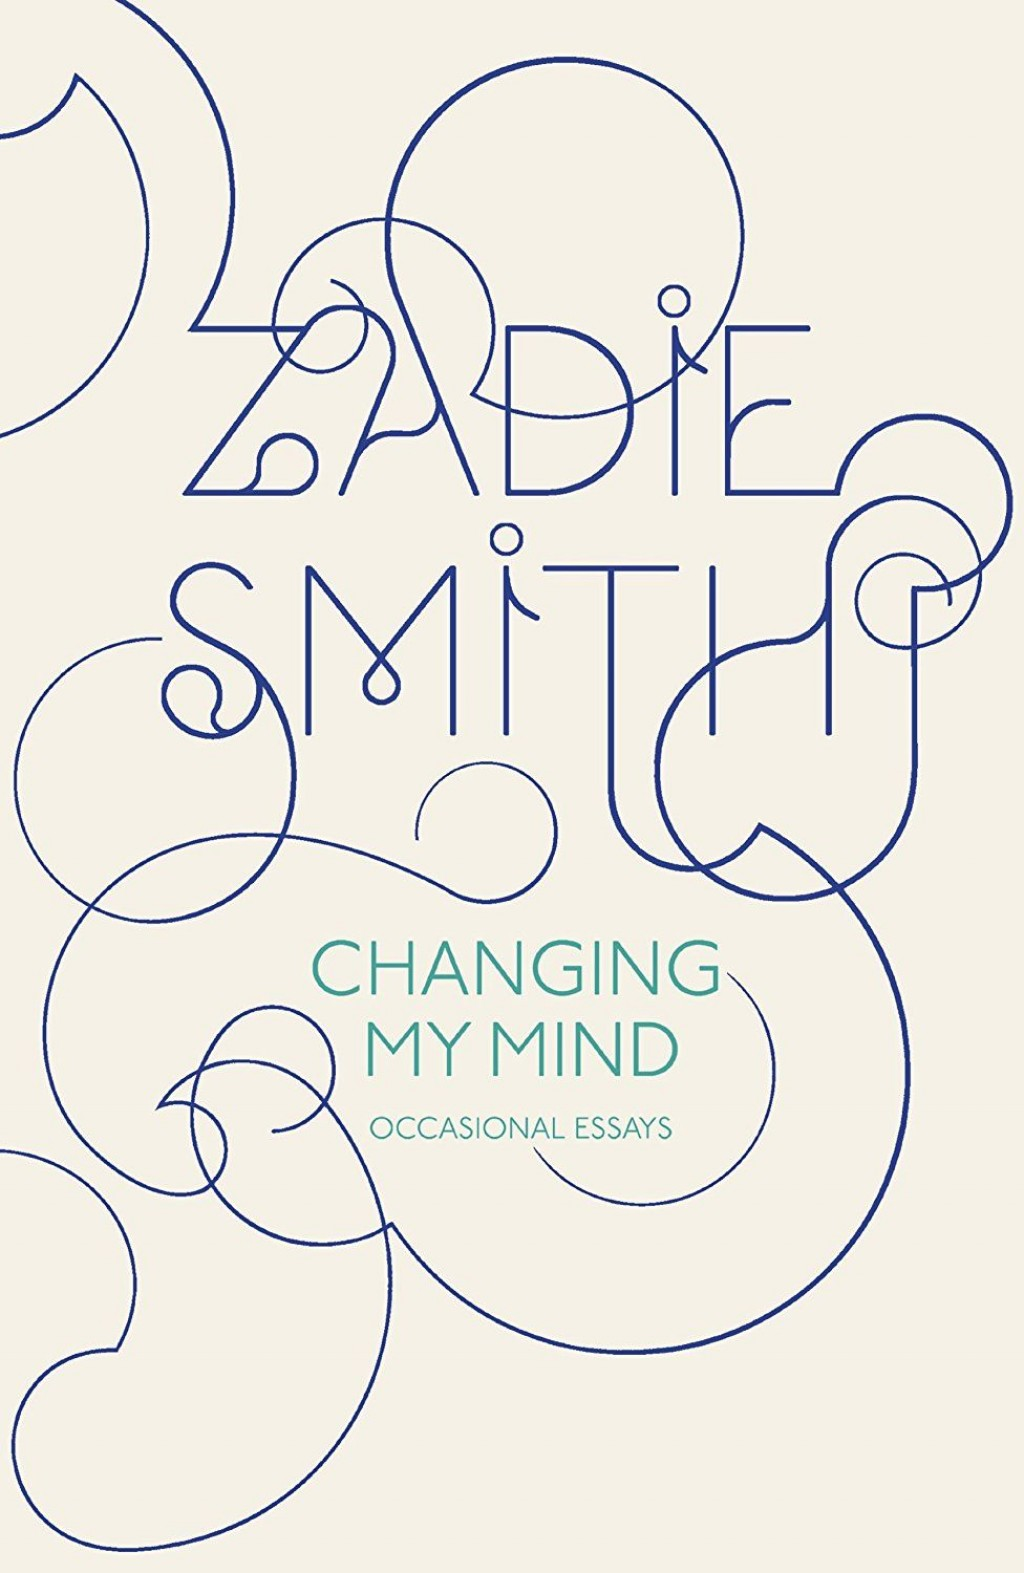 013 Zadie Smith Essays Essay Example Wonderful Amazon Radio 4 Large